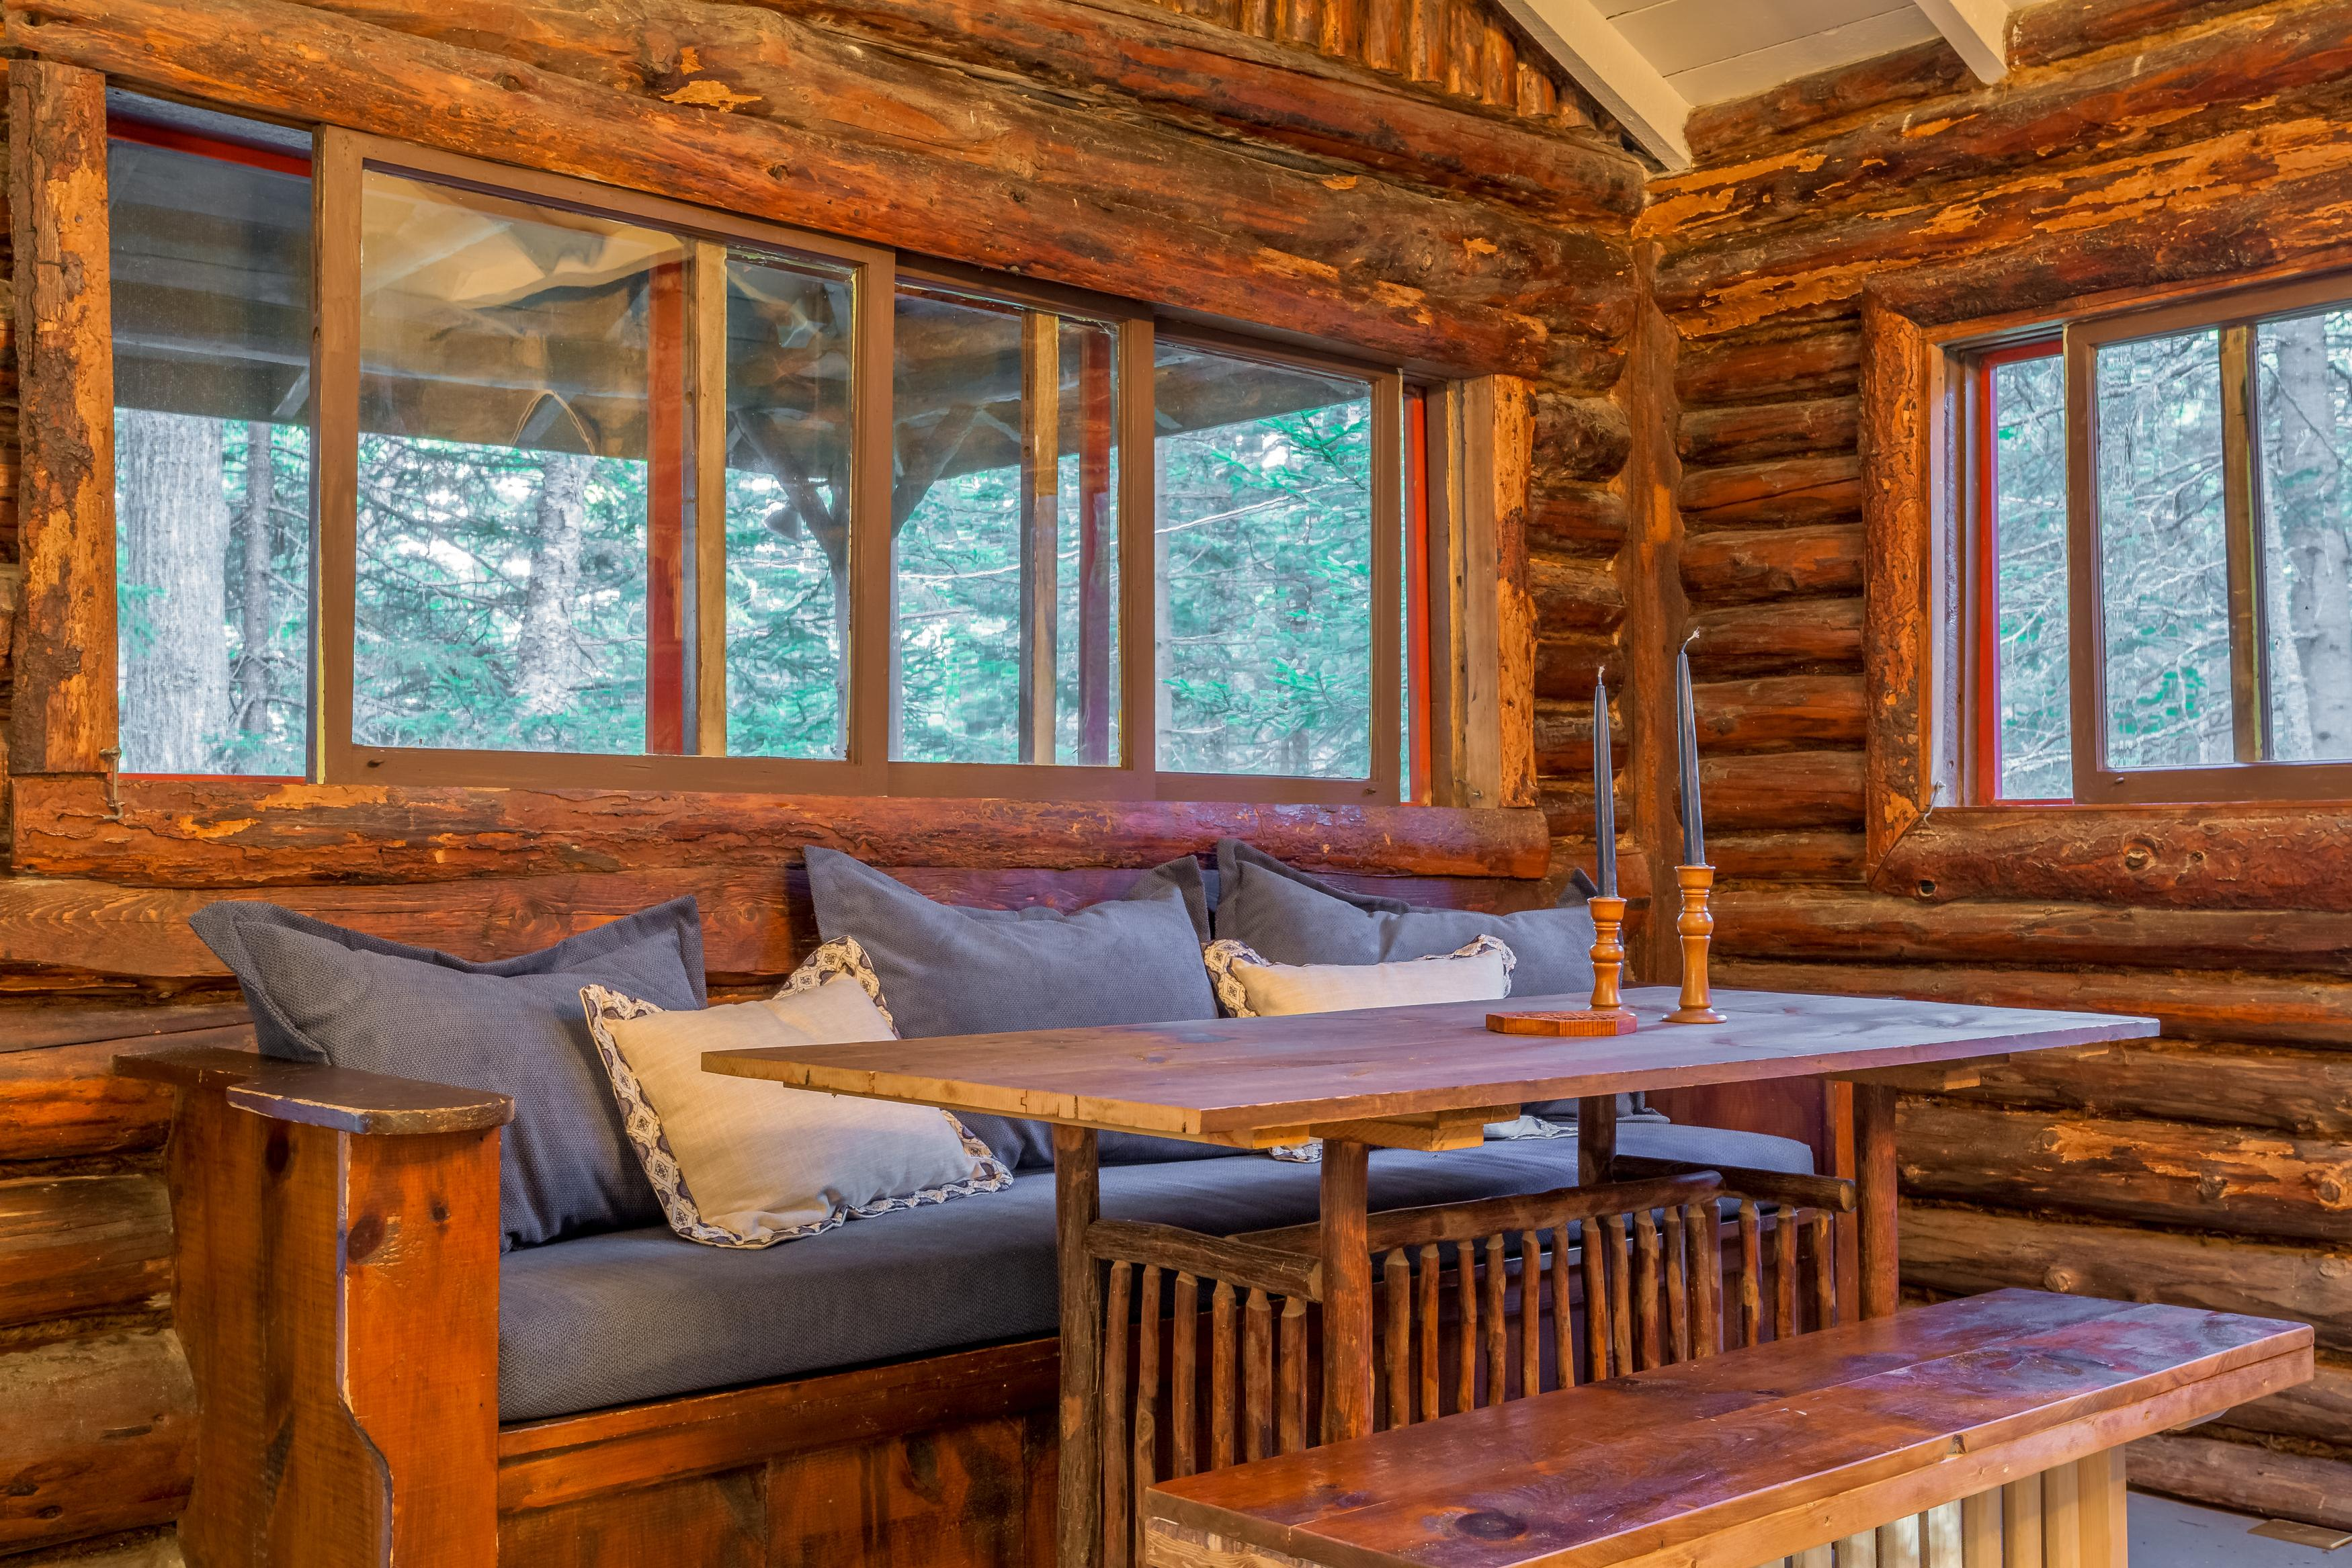 Stunning log walls surround the comfortable dining area.